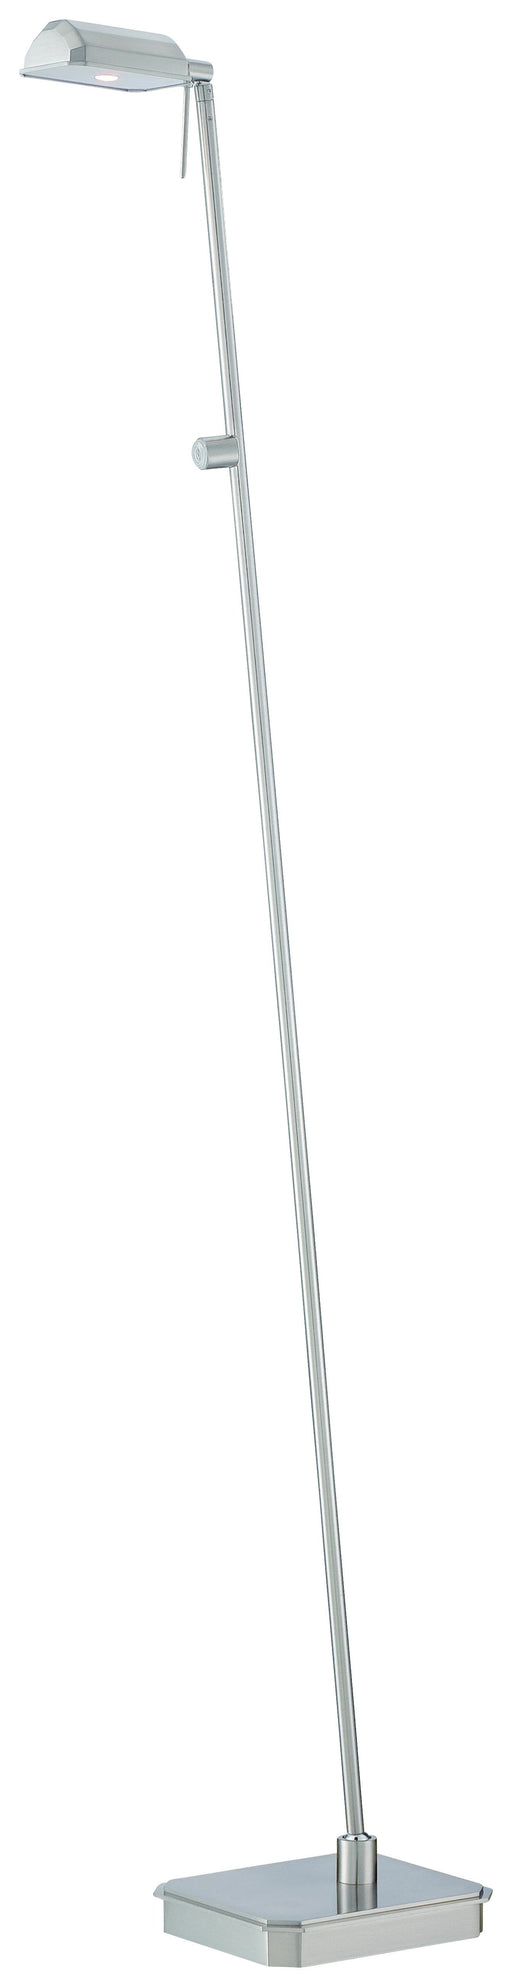 George's Reading Room™ - 1 Light LED Floor Lamp